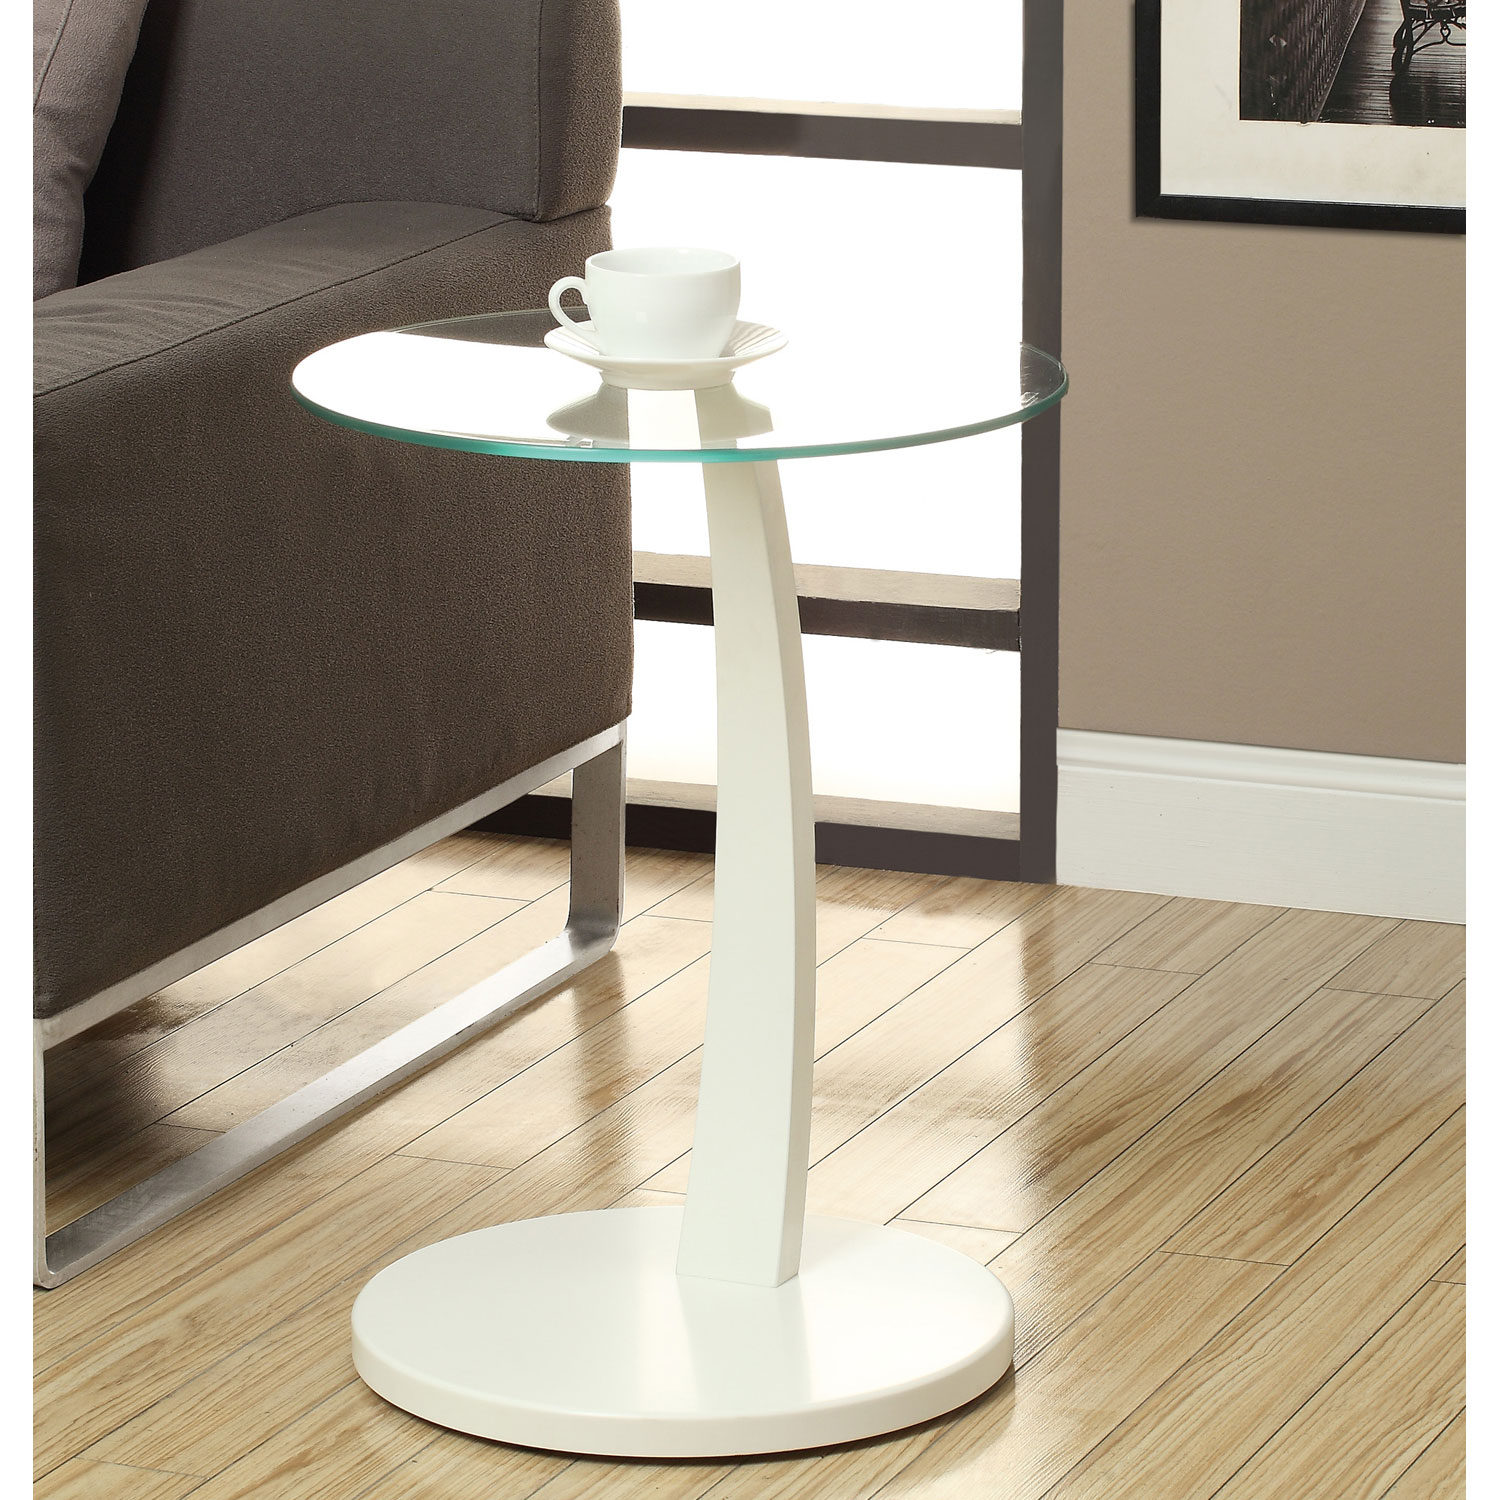 hawthorne ave accent table white bentwood with tempered glass top hover zoom vita silvia mid century replica furniture side for nursery marble sofa monarch hall console ashley